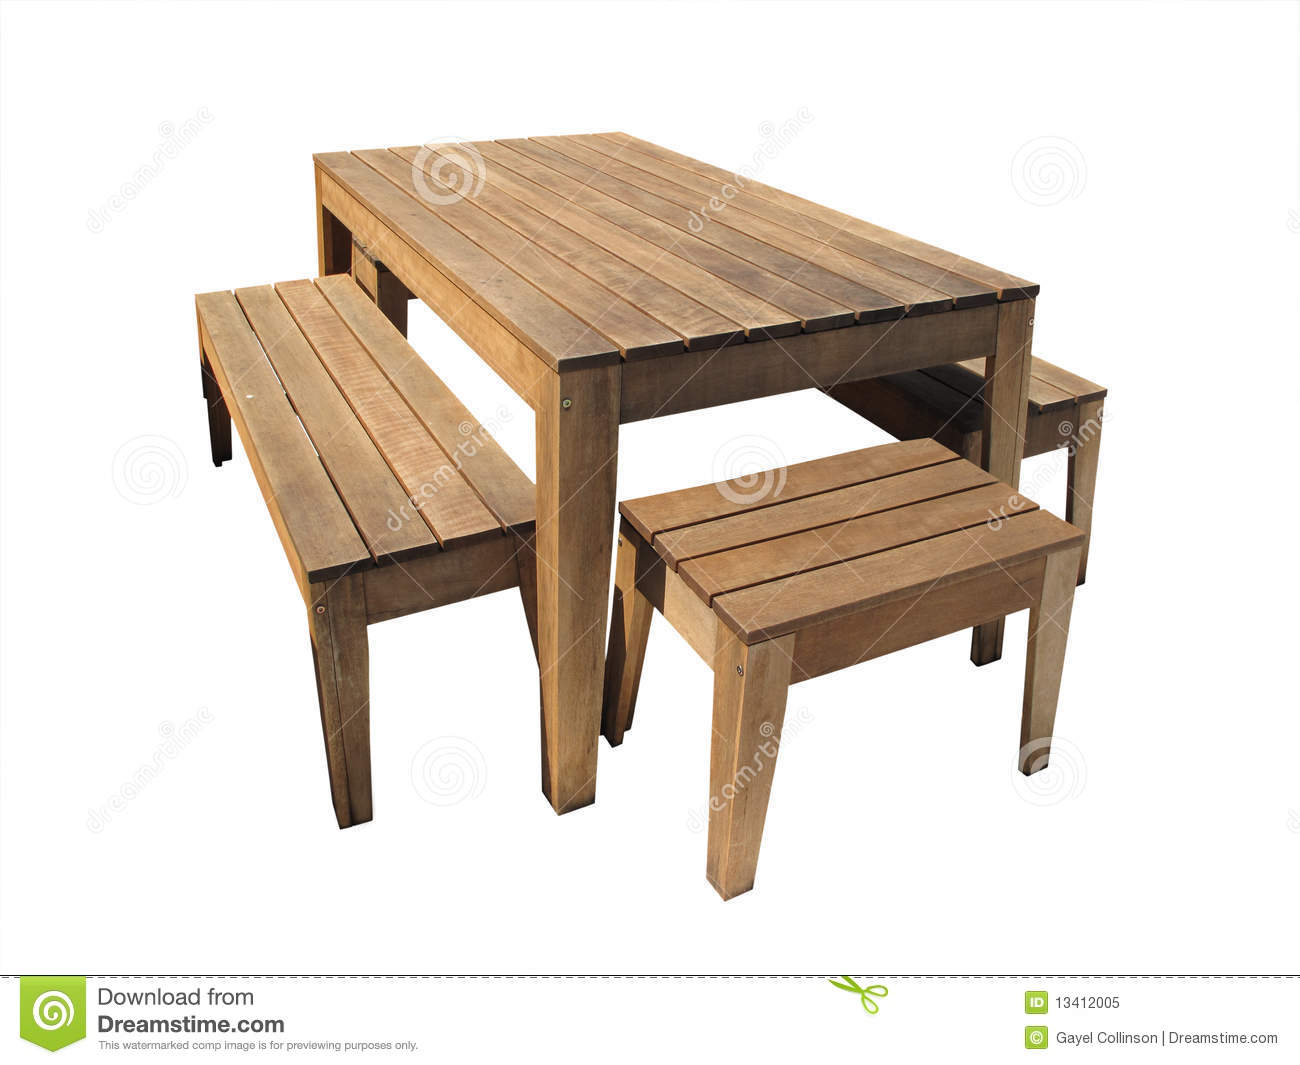 Outdoor Table Royalty Free Stock Photo - Image: 13412005